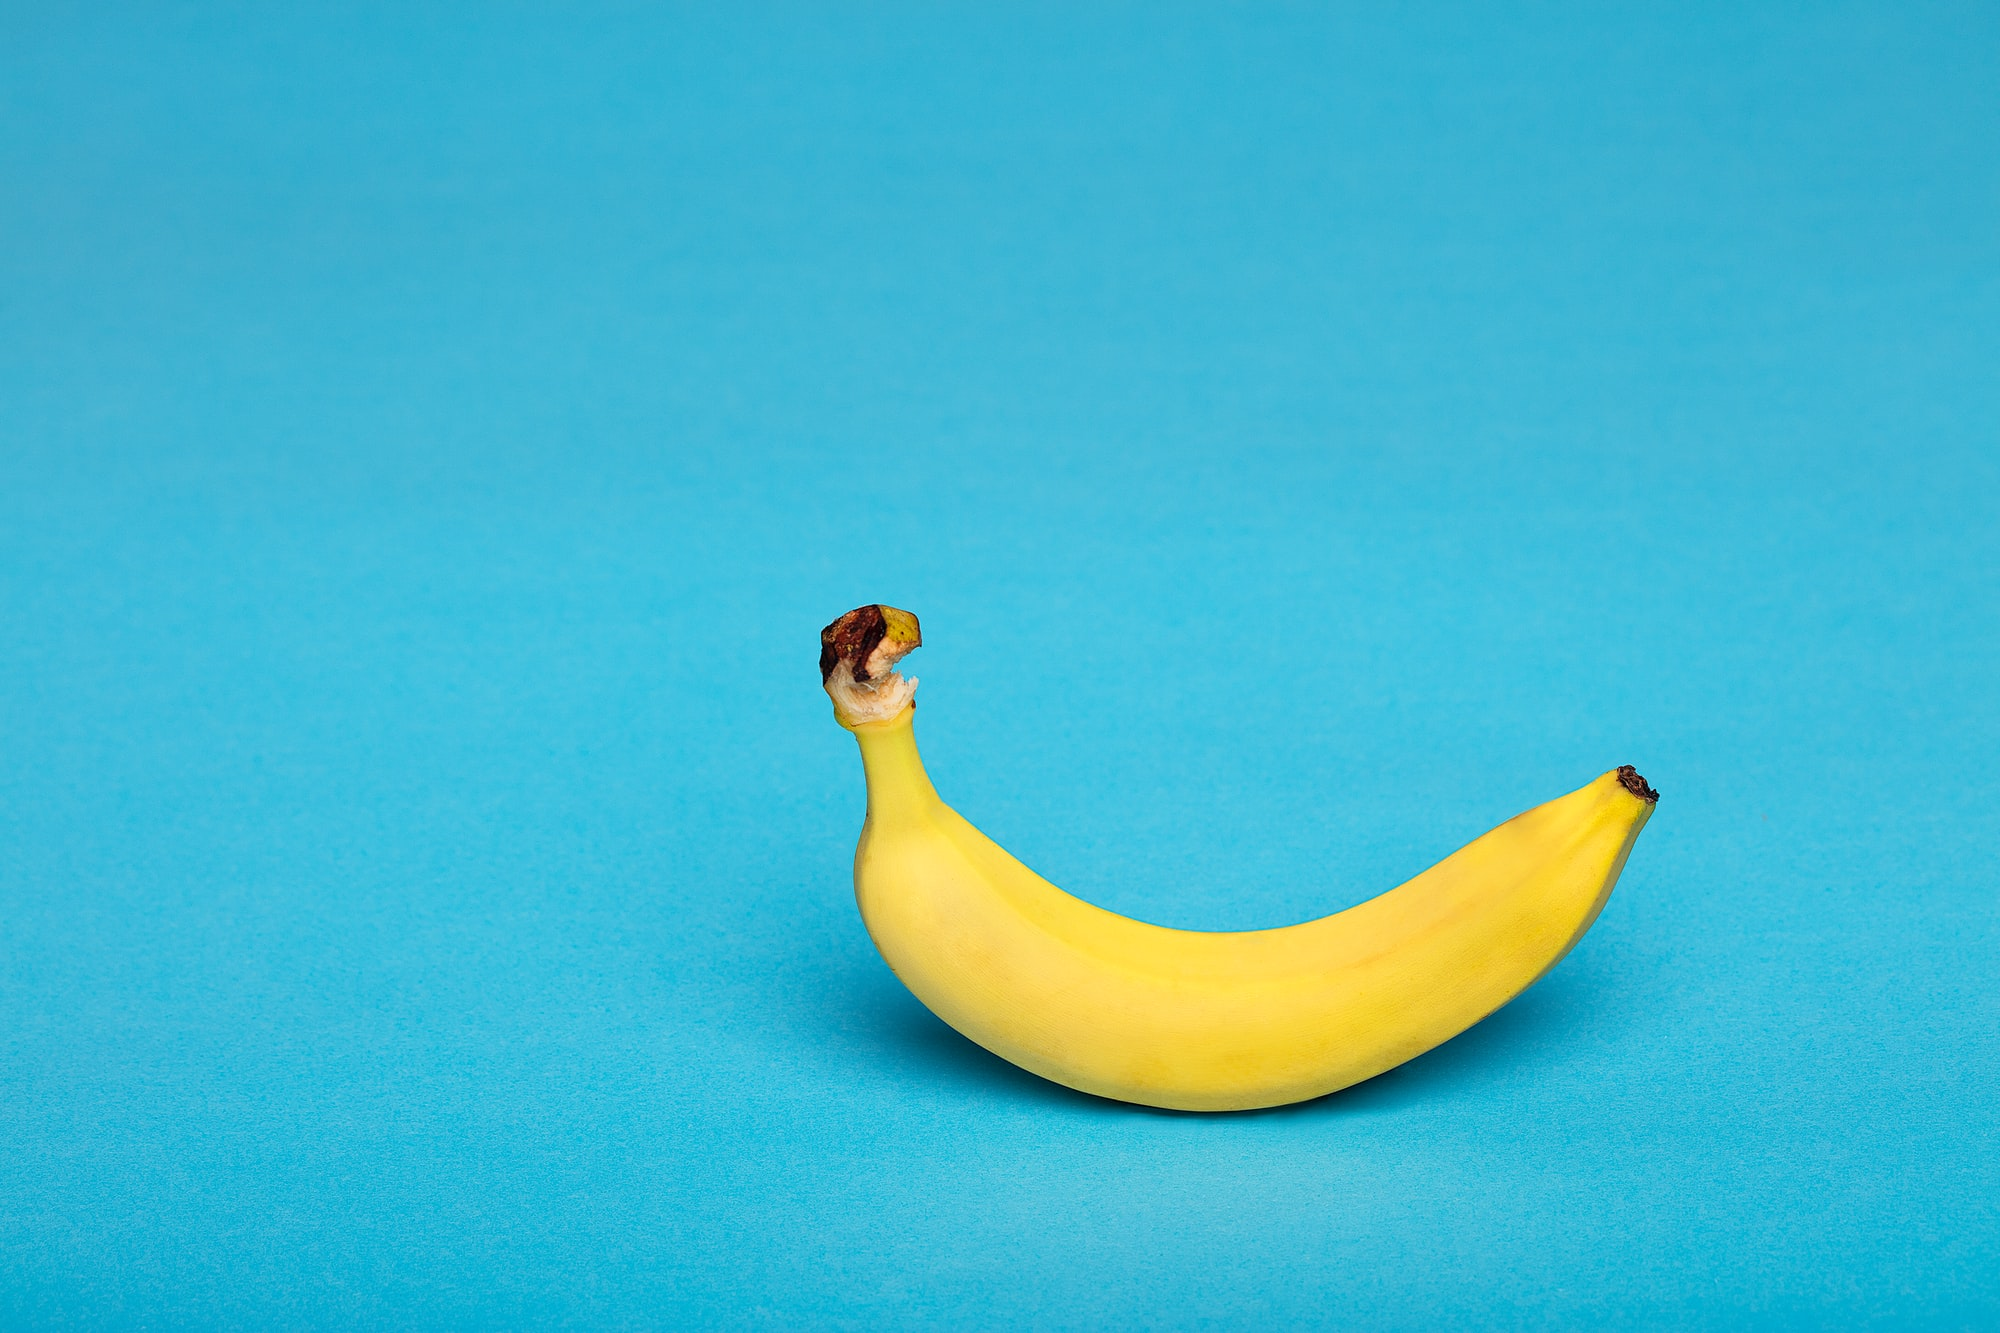 Banana is a yellow rainbow food by Deon Black for Unsplash